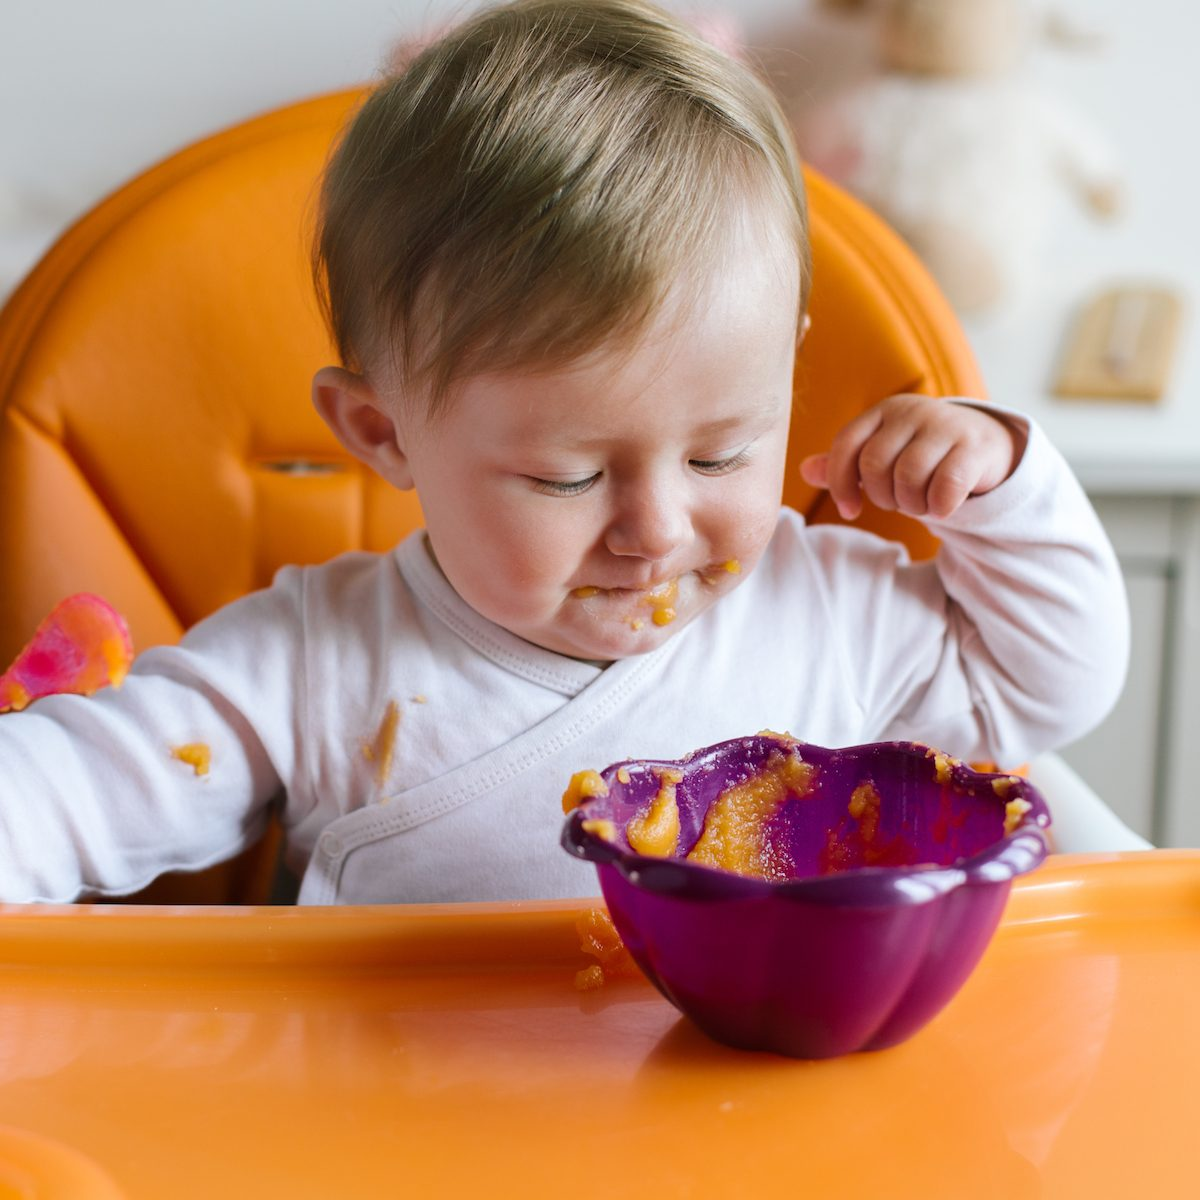 Portrait of baby girl sitting in high chair and eating sweet potato